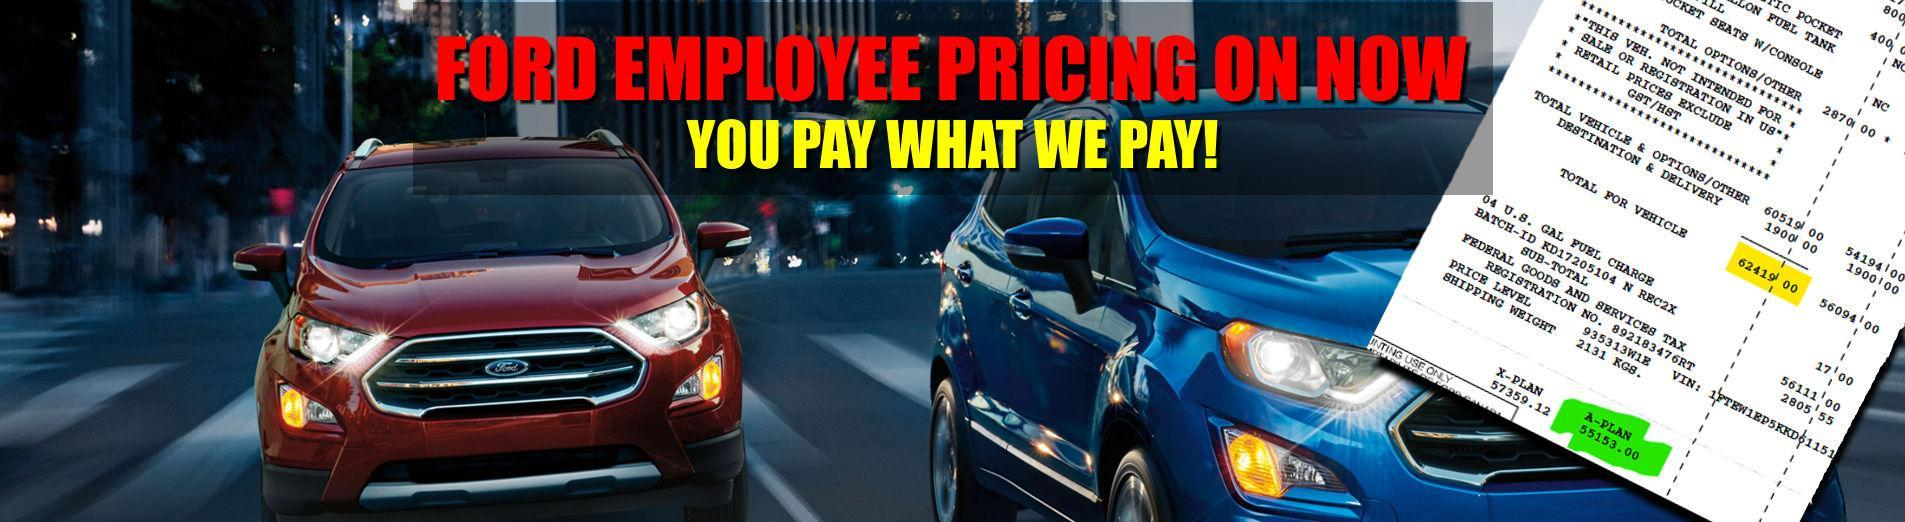 Ford Employee Pricing on now at Metro Ford in Calgary Alberta